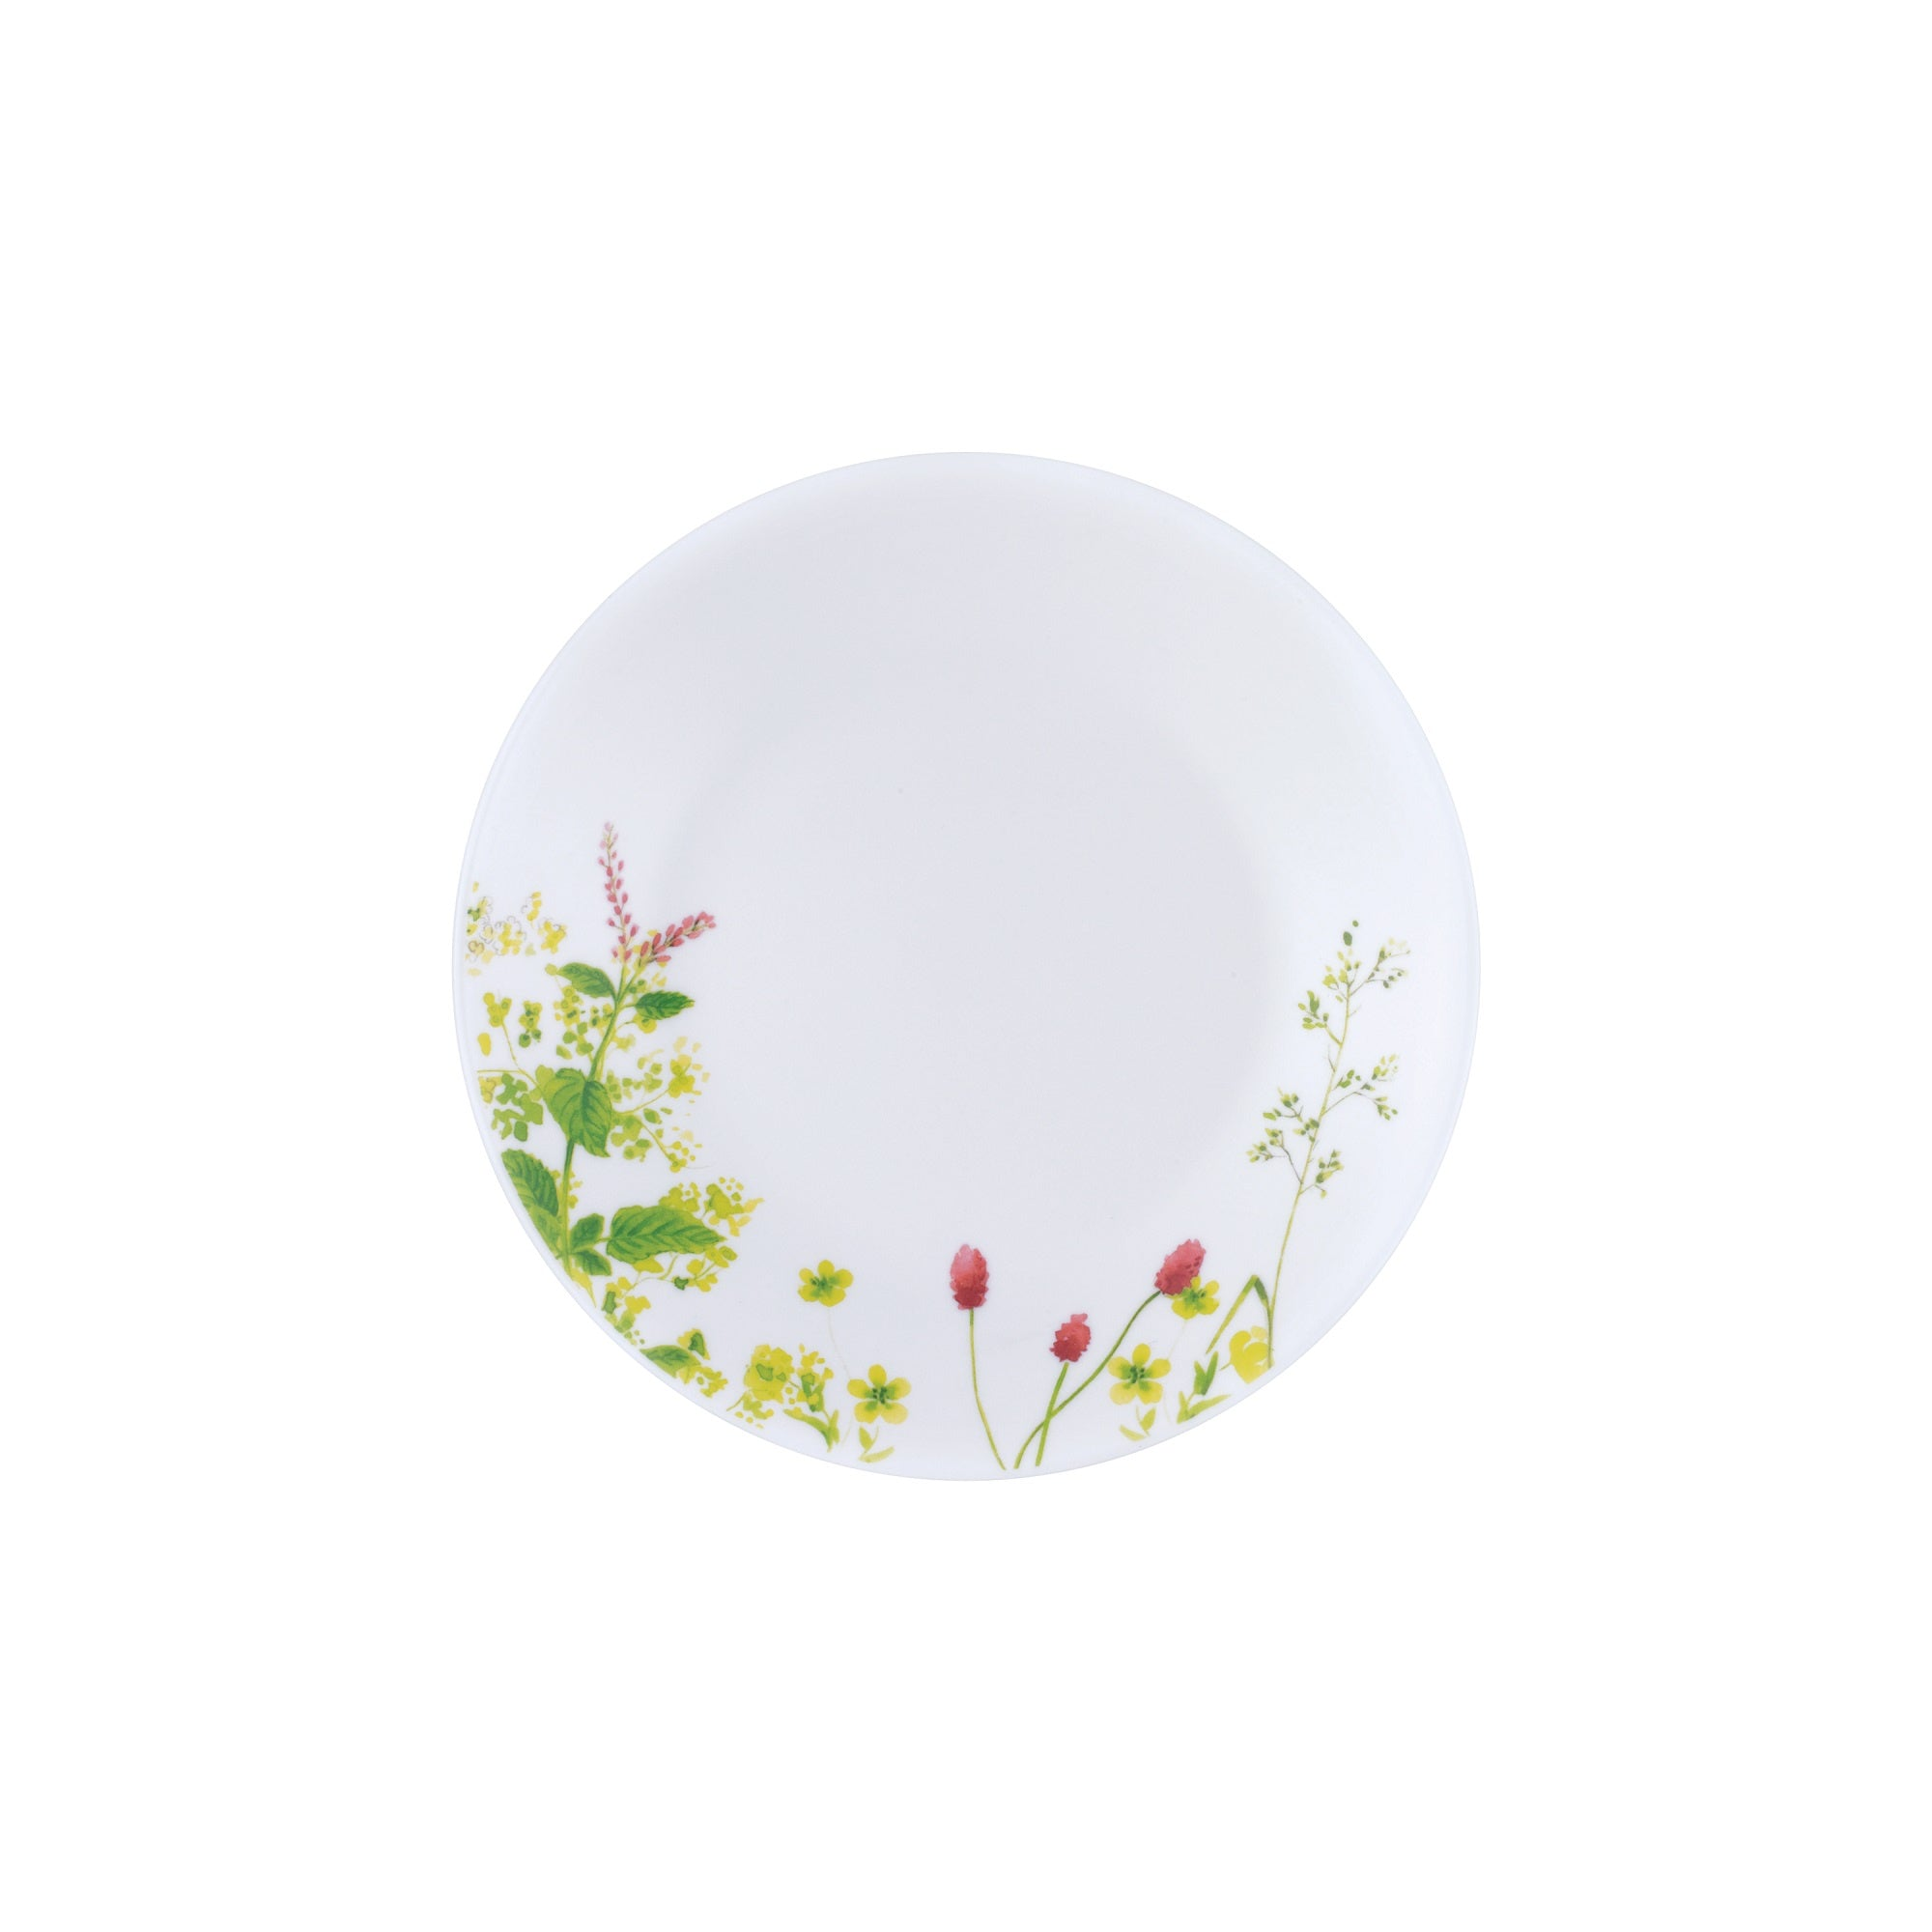 Corelle Deluxe Classic Provence Garden 17cm Bread & Butter Plate-106-PVG-LP